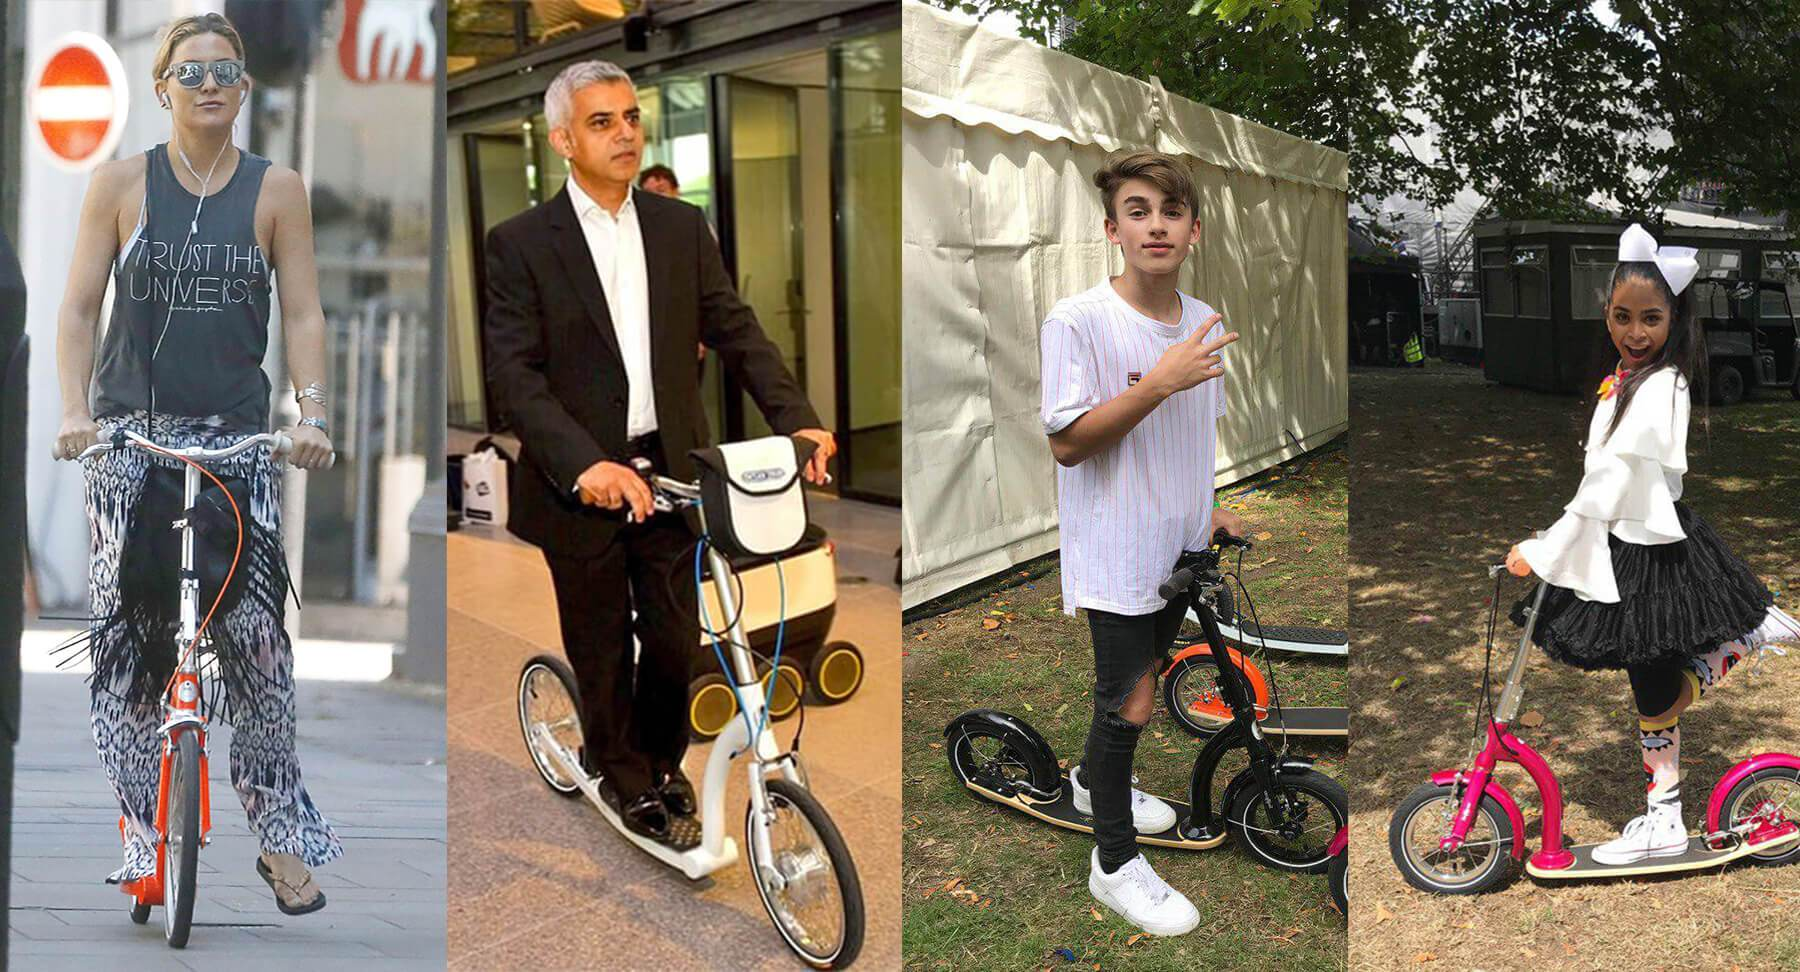 celebrity scooter, famous scooters, big wheel adult scooter